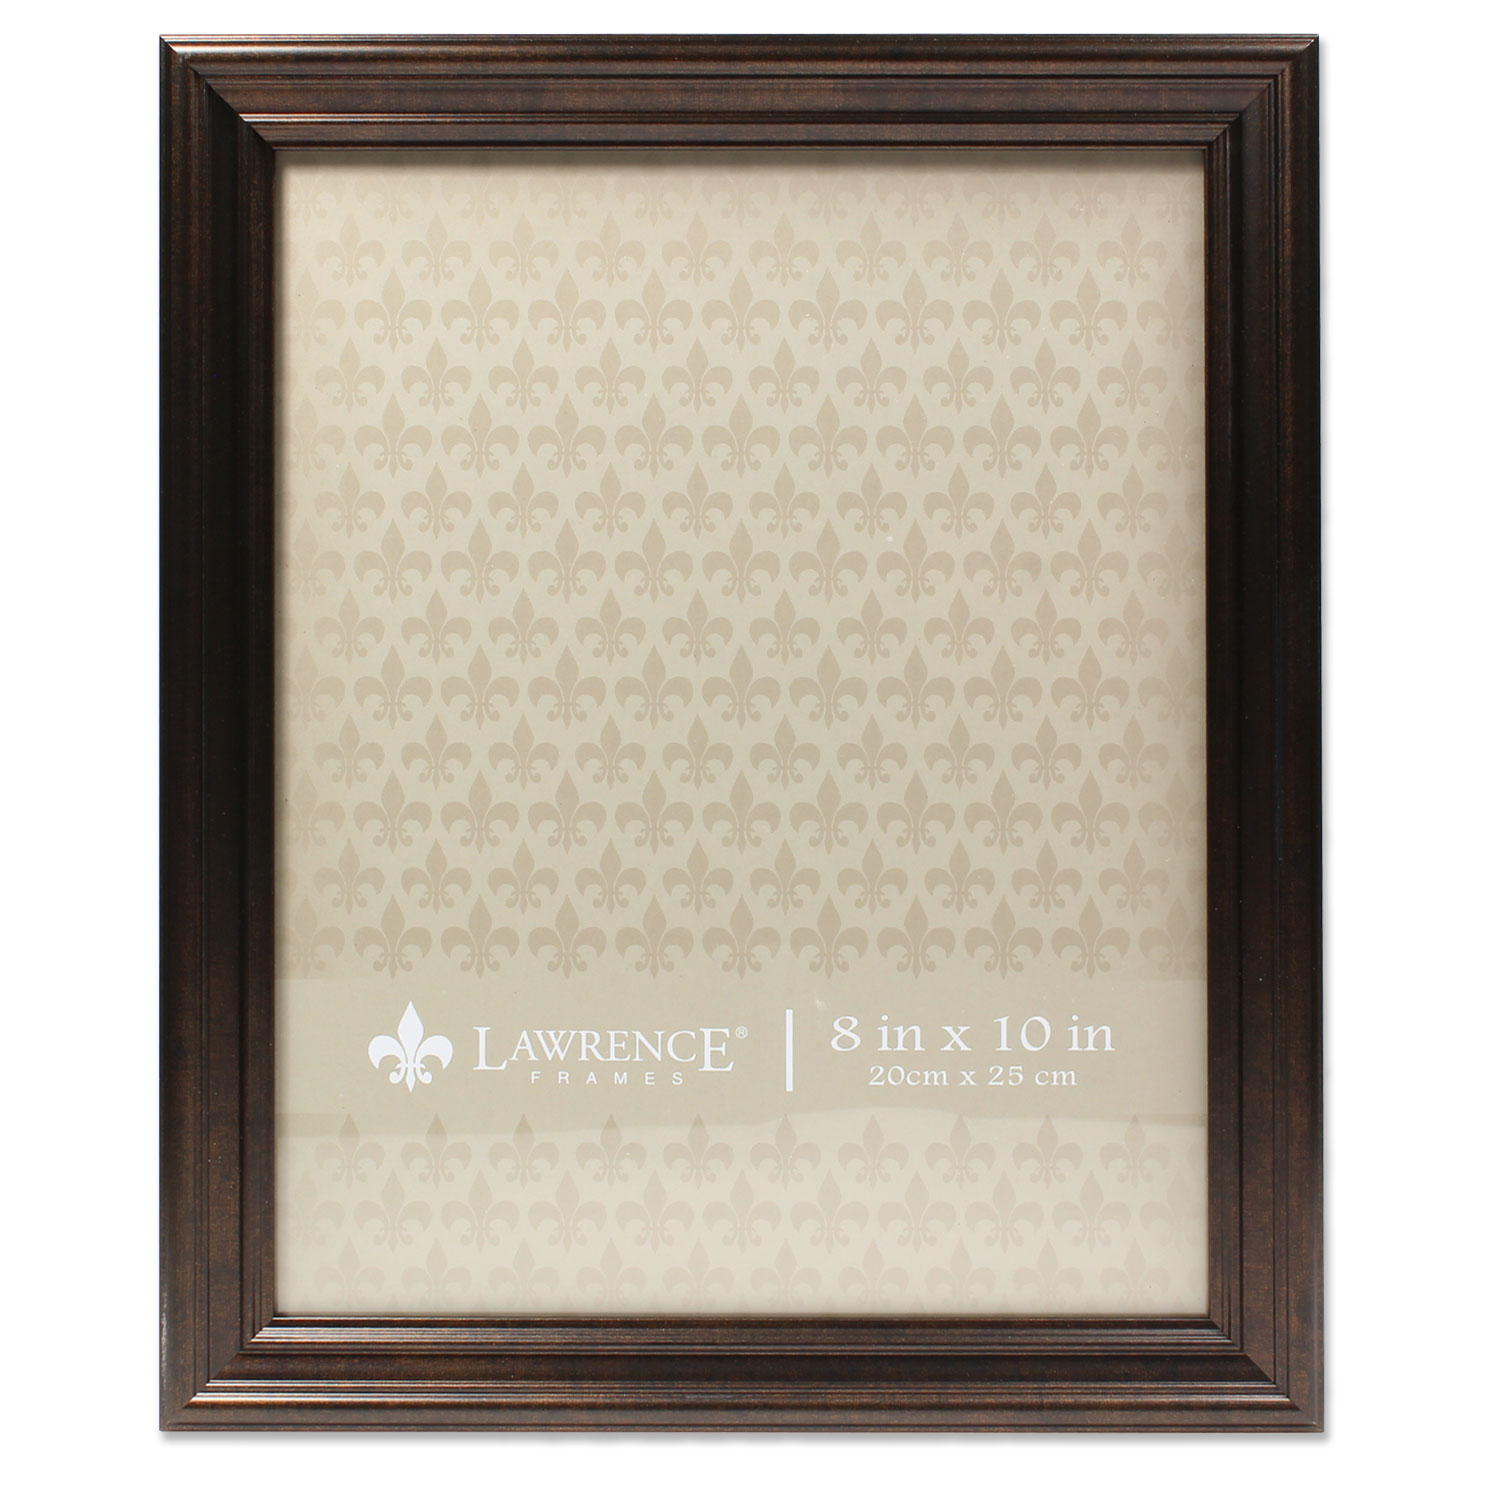 8x10 Classic Detailed Oil Rubbed Bronze Picture Frame by Lawrence Frames